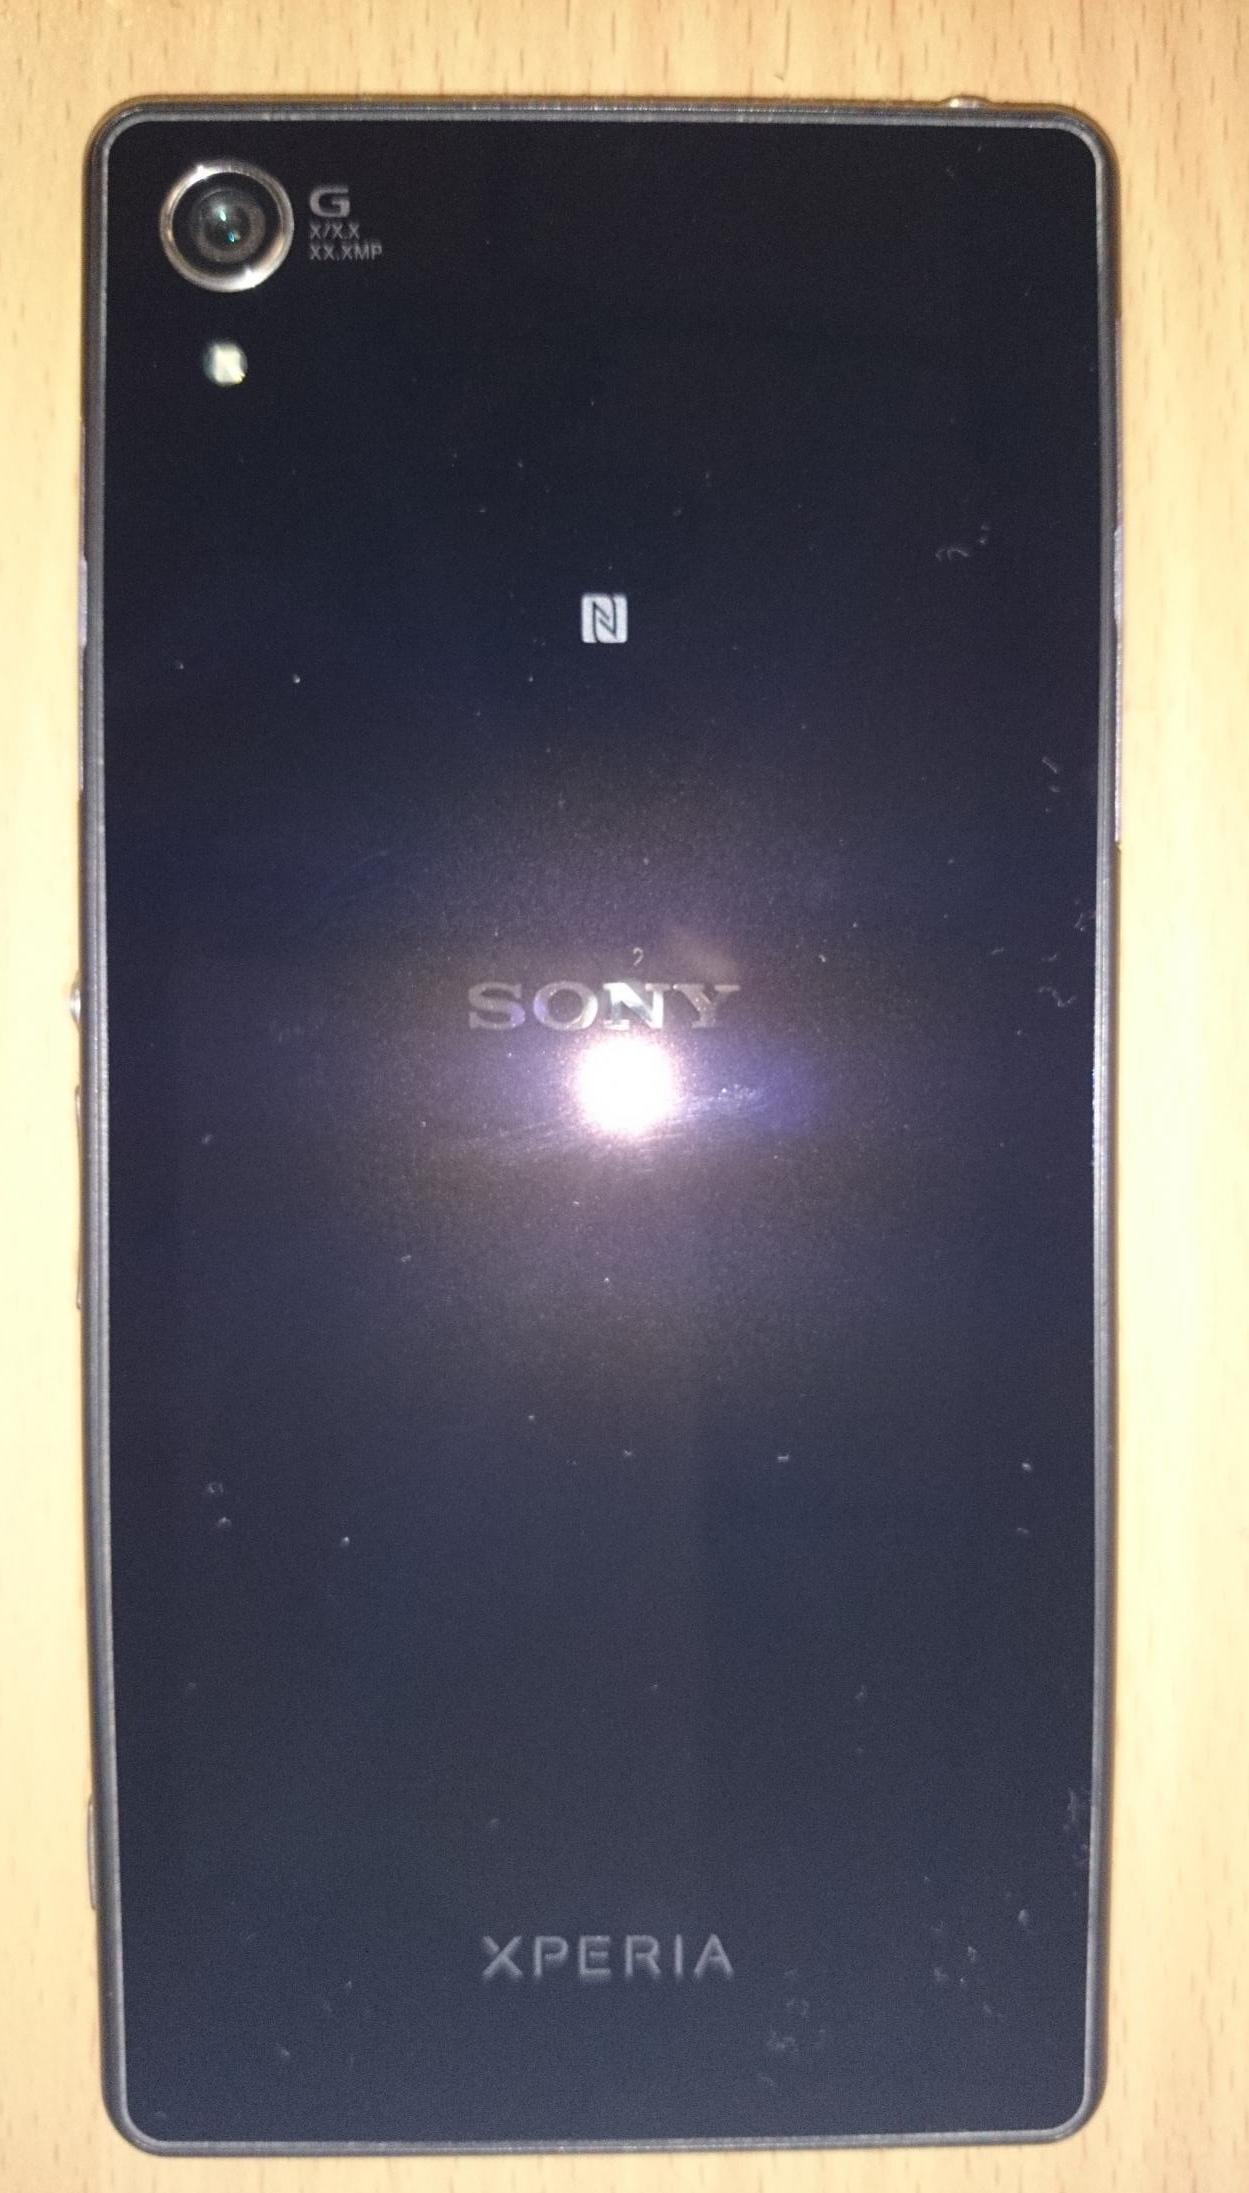 Xperia Z2 Back Panel - Sony D6503 sirius